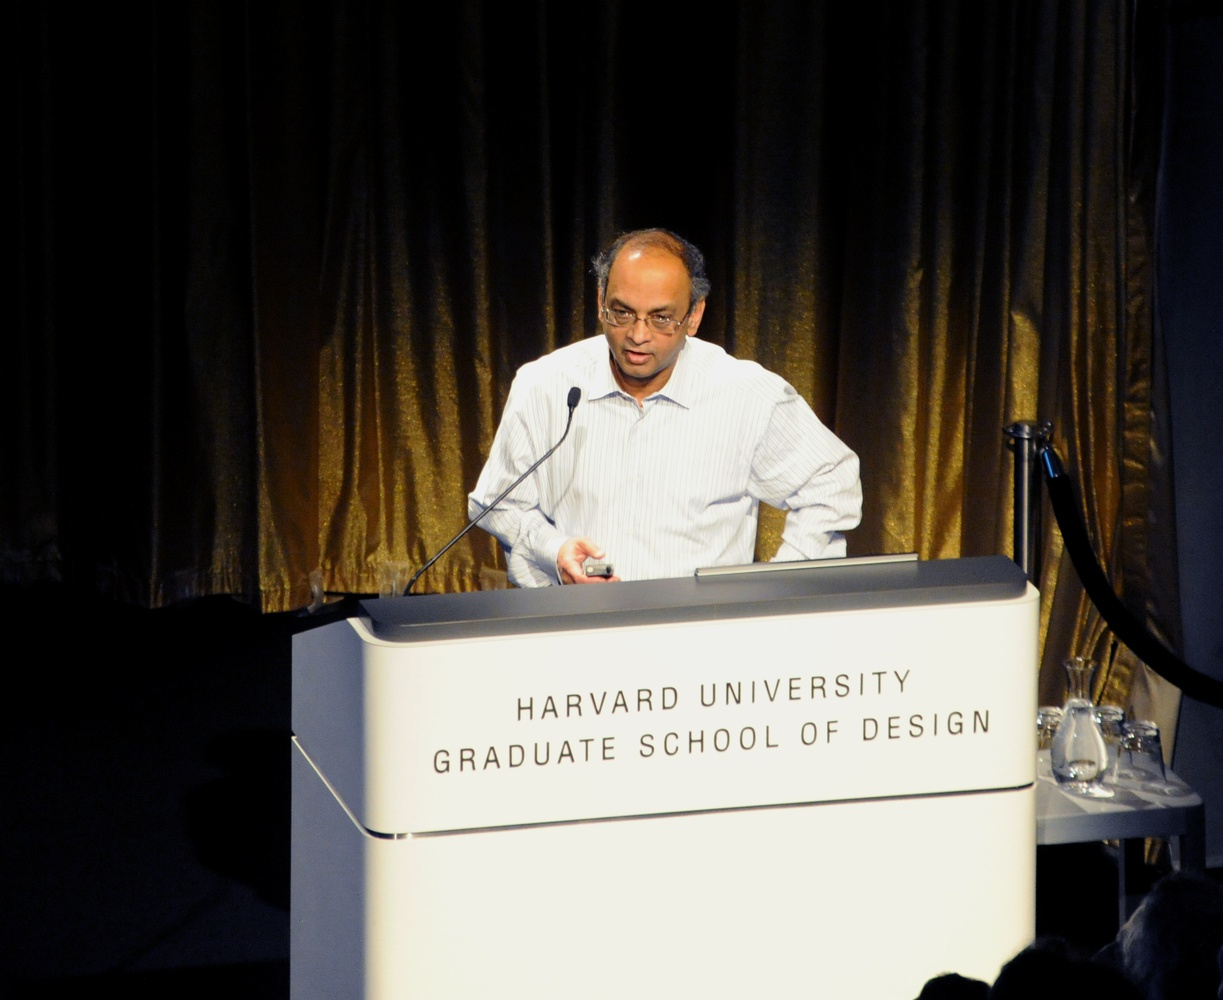 Business School professor Rajiv Lal speaks at Gund Hall in Harvard's Graduate School of Design Wednesday night. He discussed the future of retail, focusing on the integration of new technologies, like the drone delivery of packages.